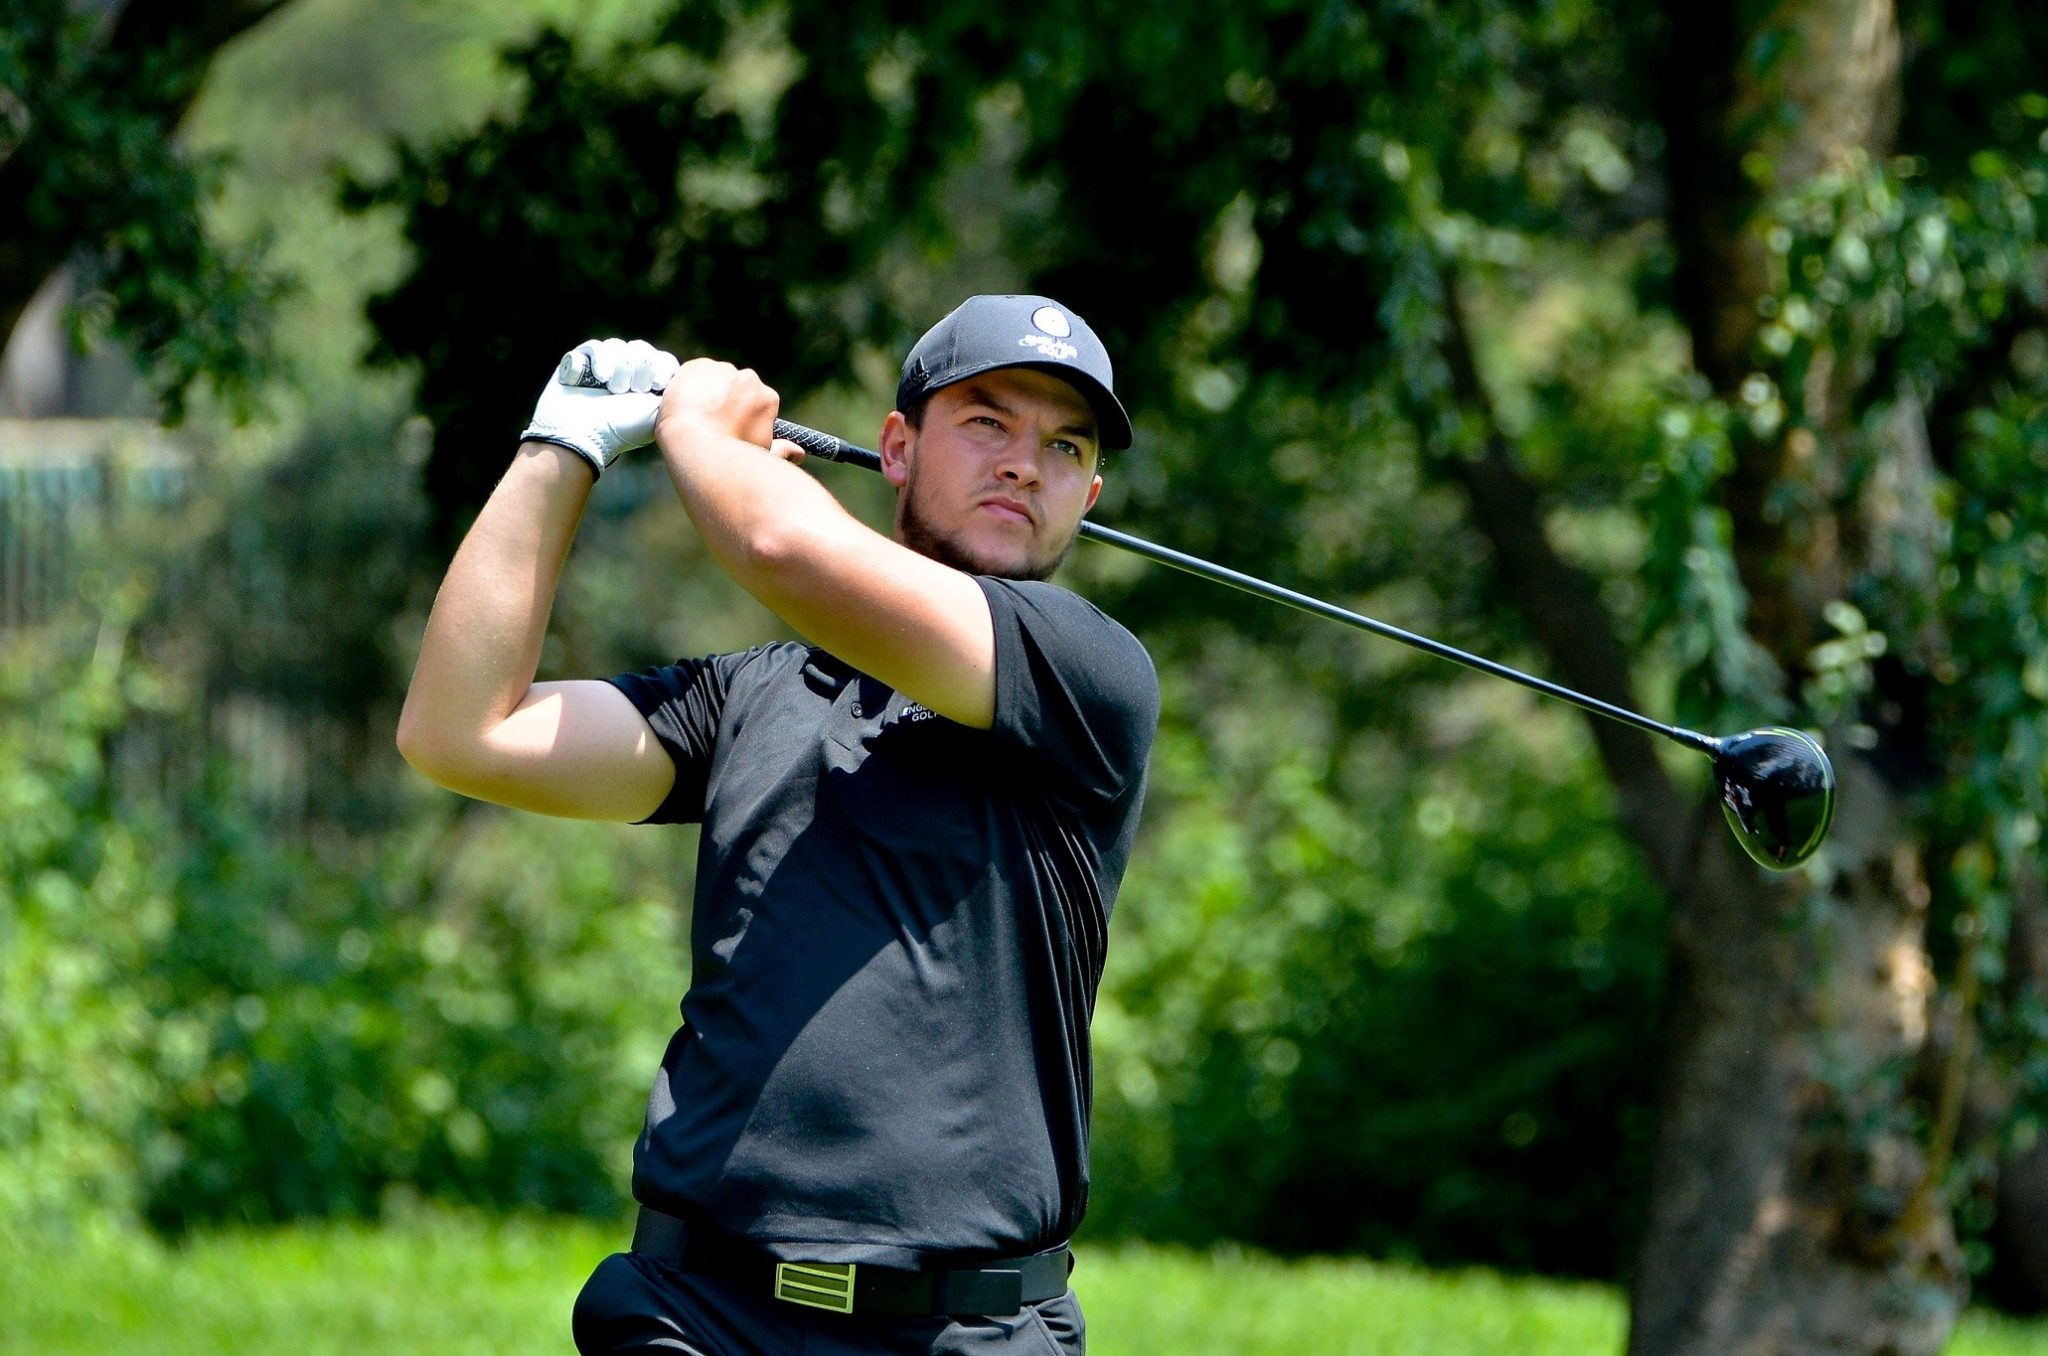 The 149th Open: Bairstow ready to fly flag for England Golf at St George's